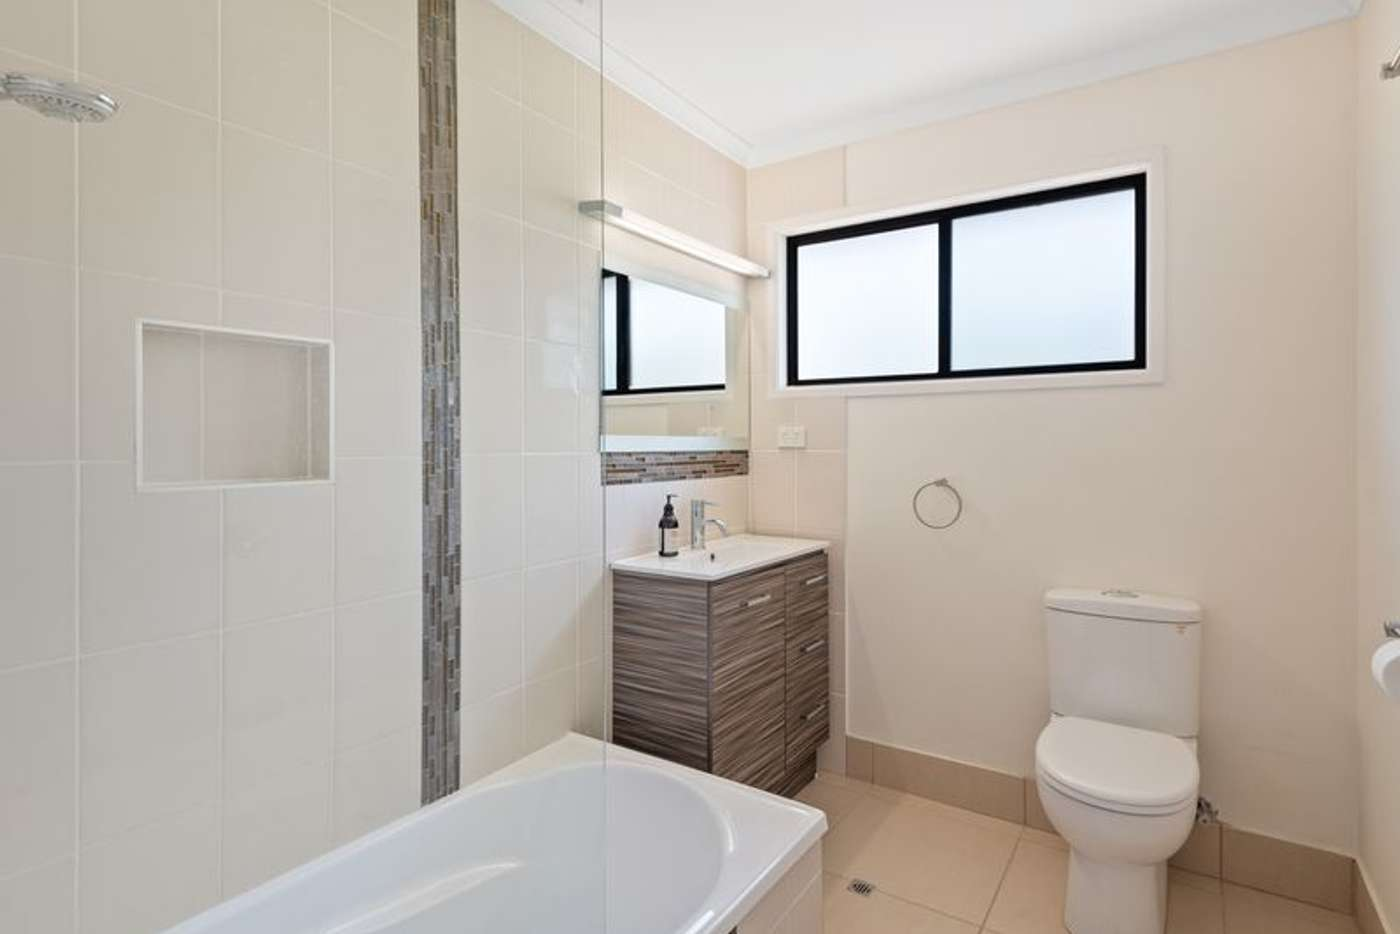 Seventh view of Homely house listing, 15 Mazzard Street, Bellbowrie QLD 4070